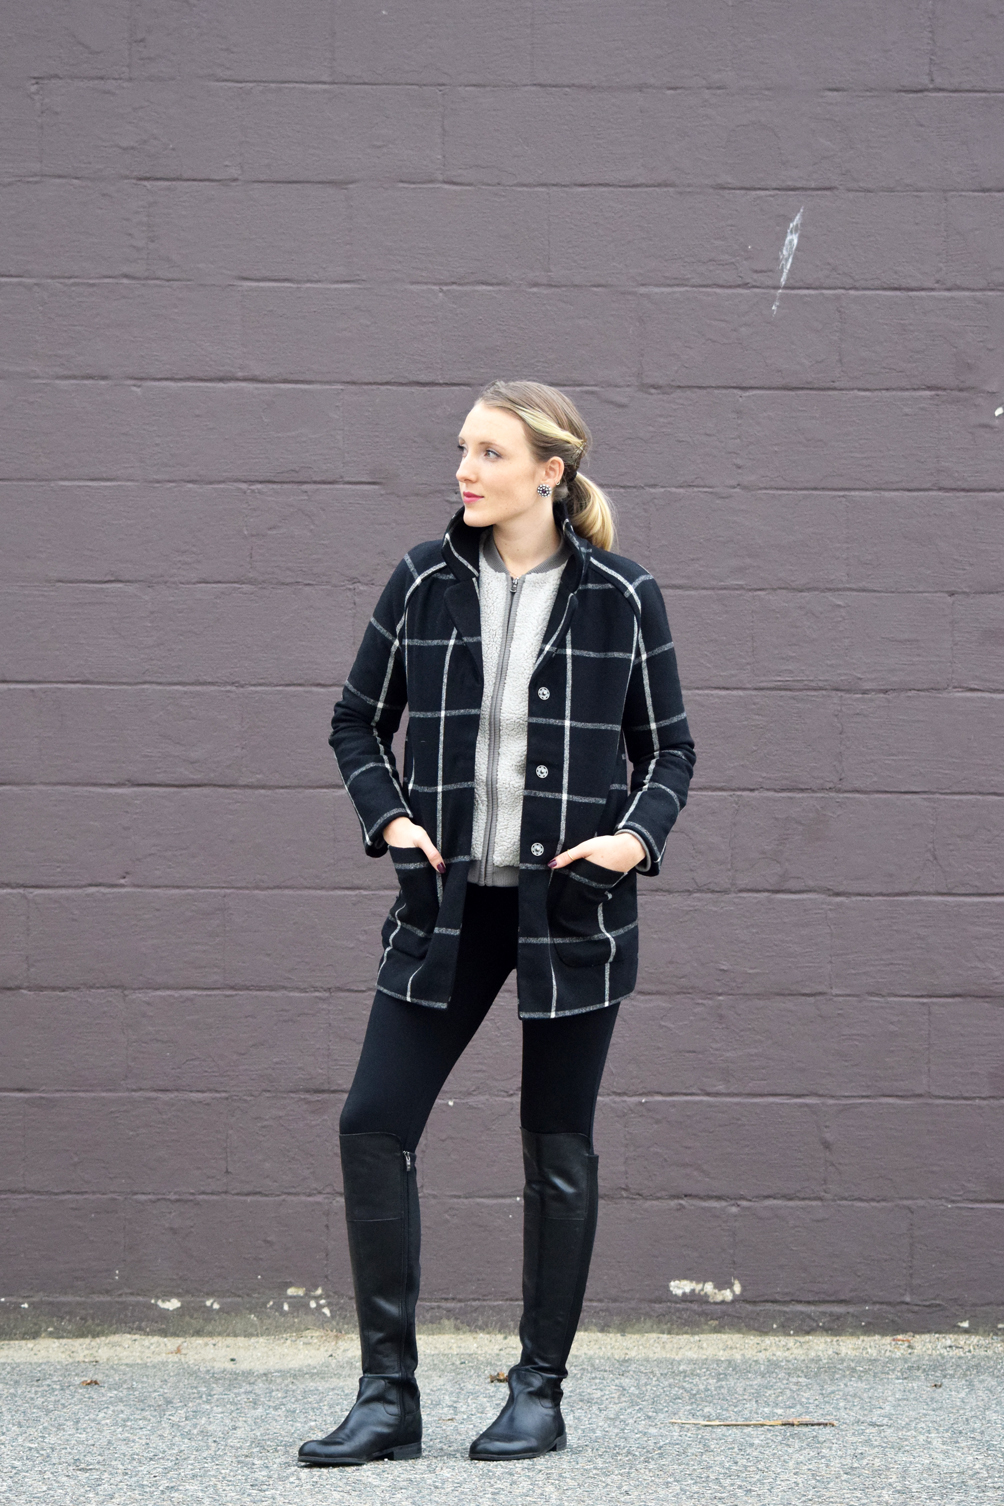 Old Navy style checkered coat, fuzzy jacket, black leggings